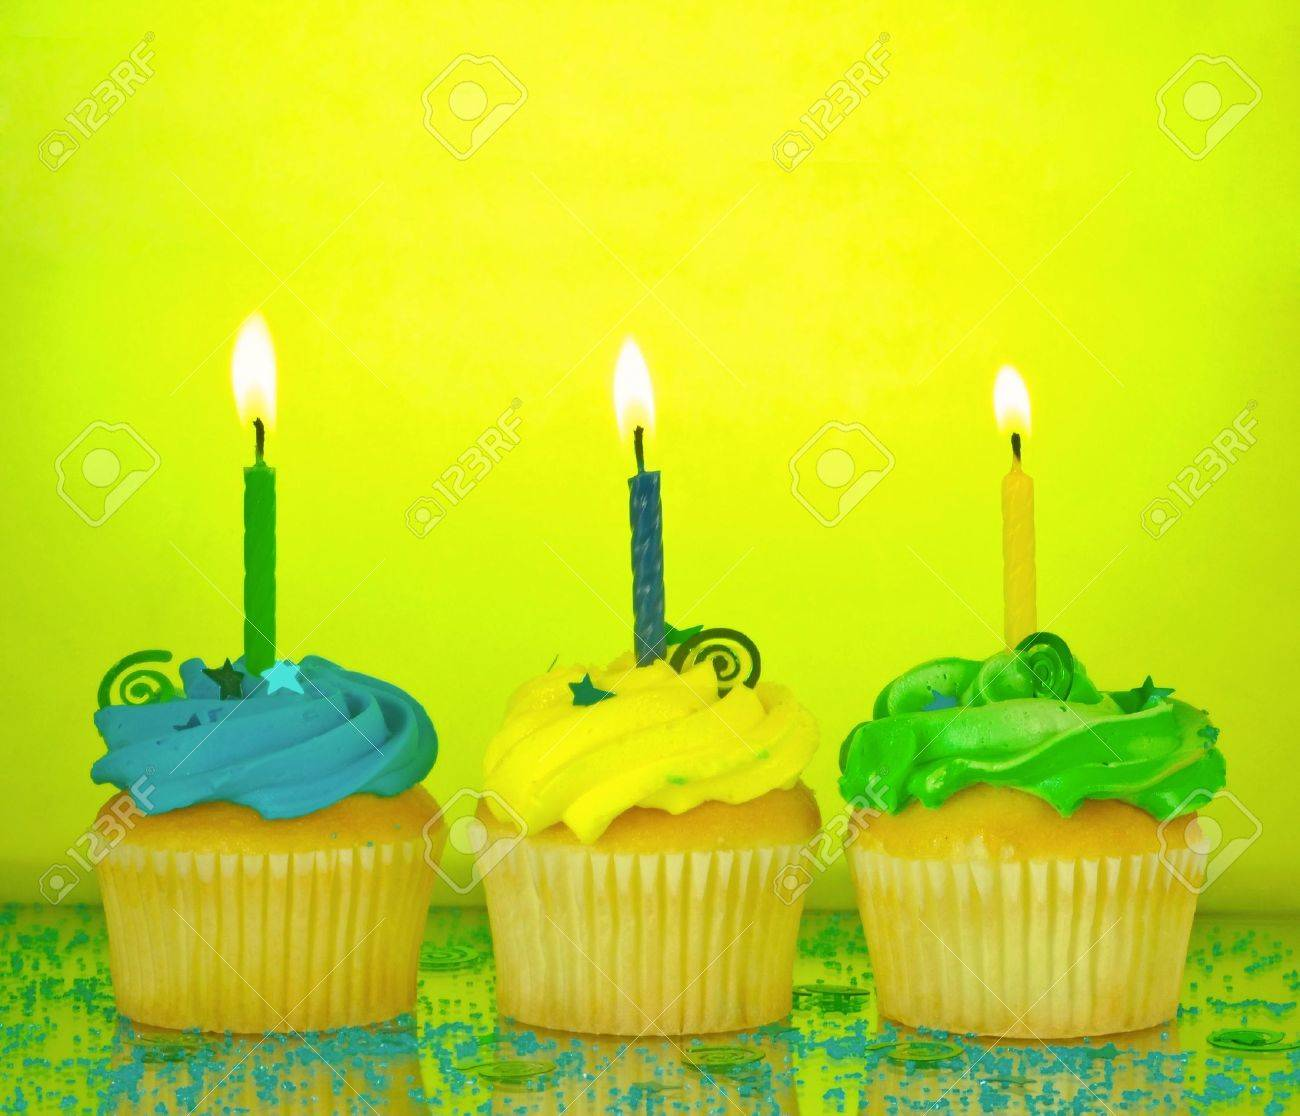 Three Birthday Cupcakes In Blue Green And Yellow With Lit Candles